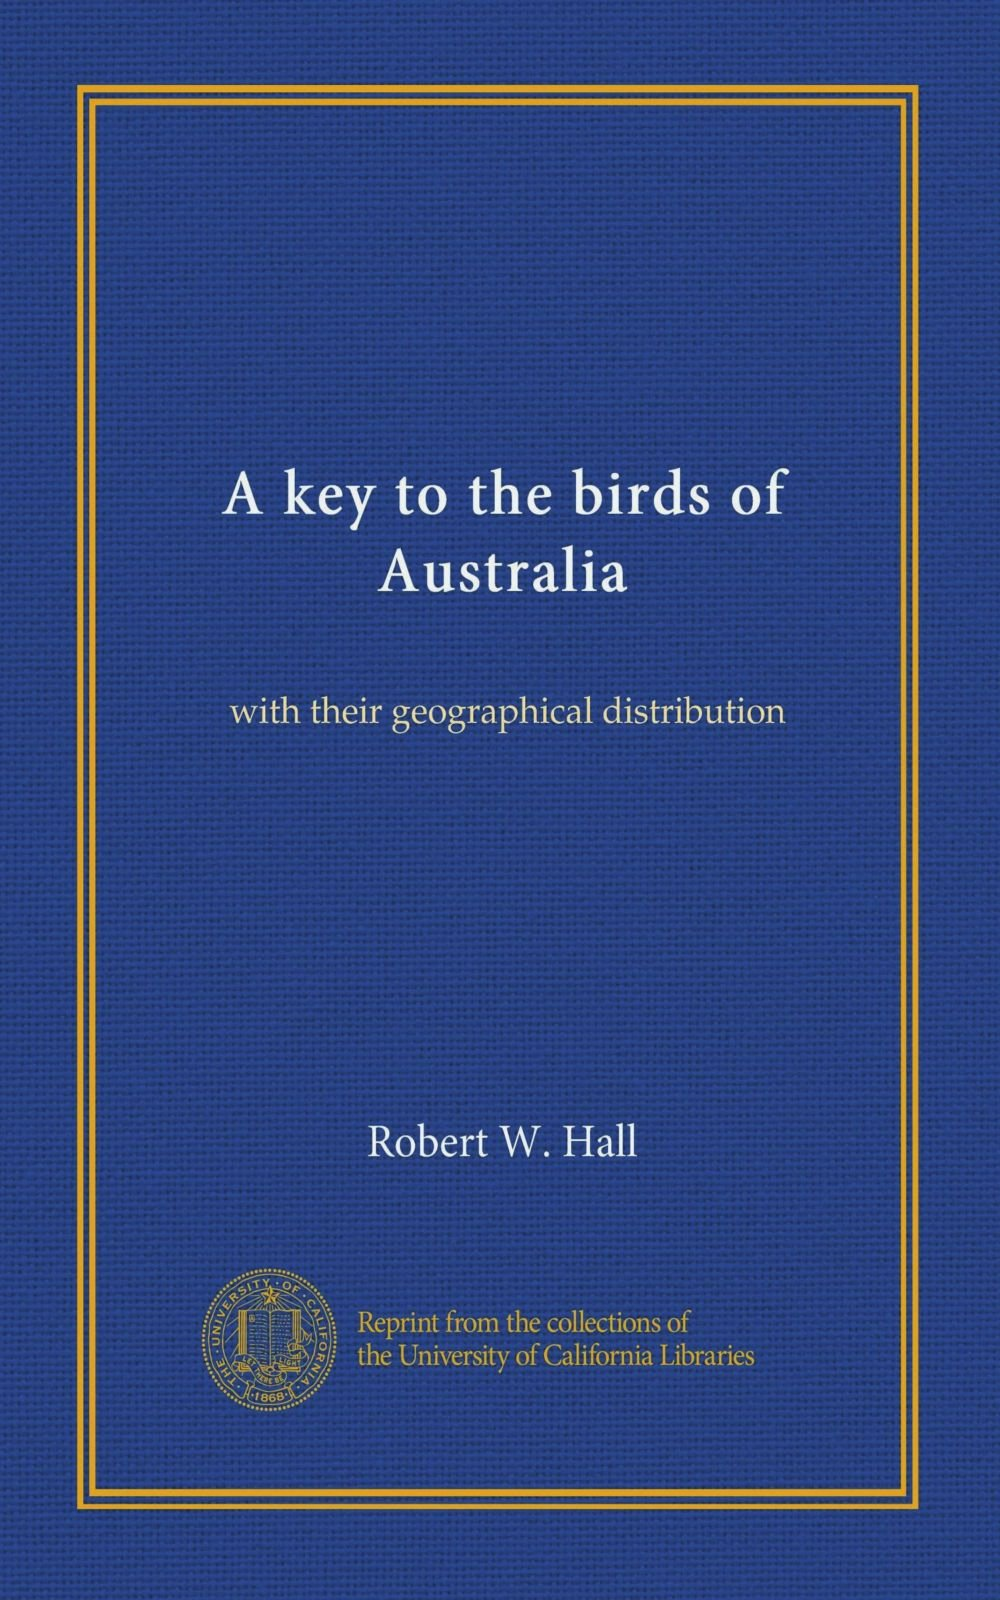 A key to the birds of Australia: with their geographical distribution PDF